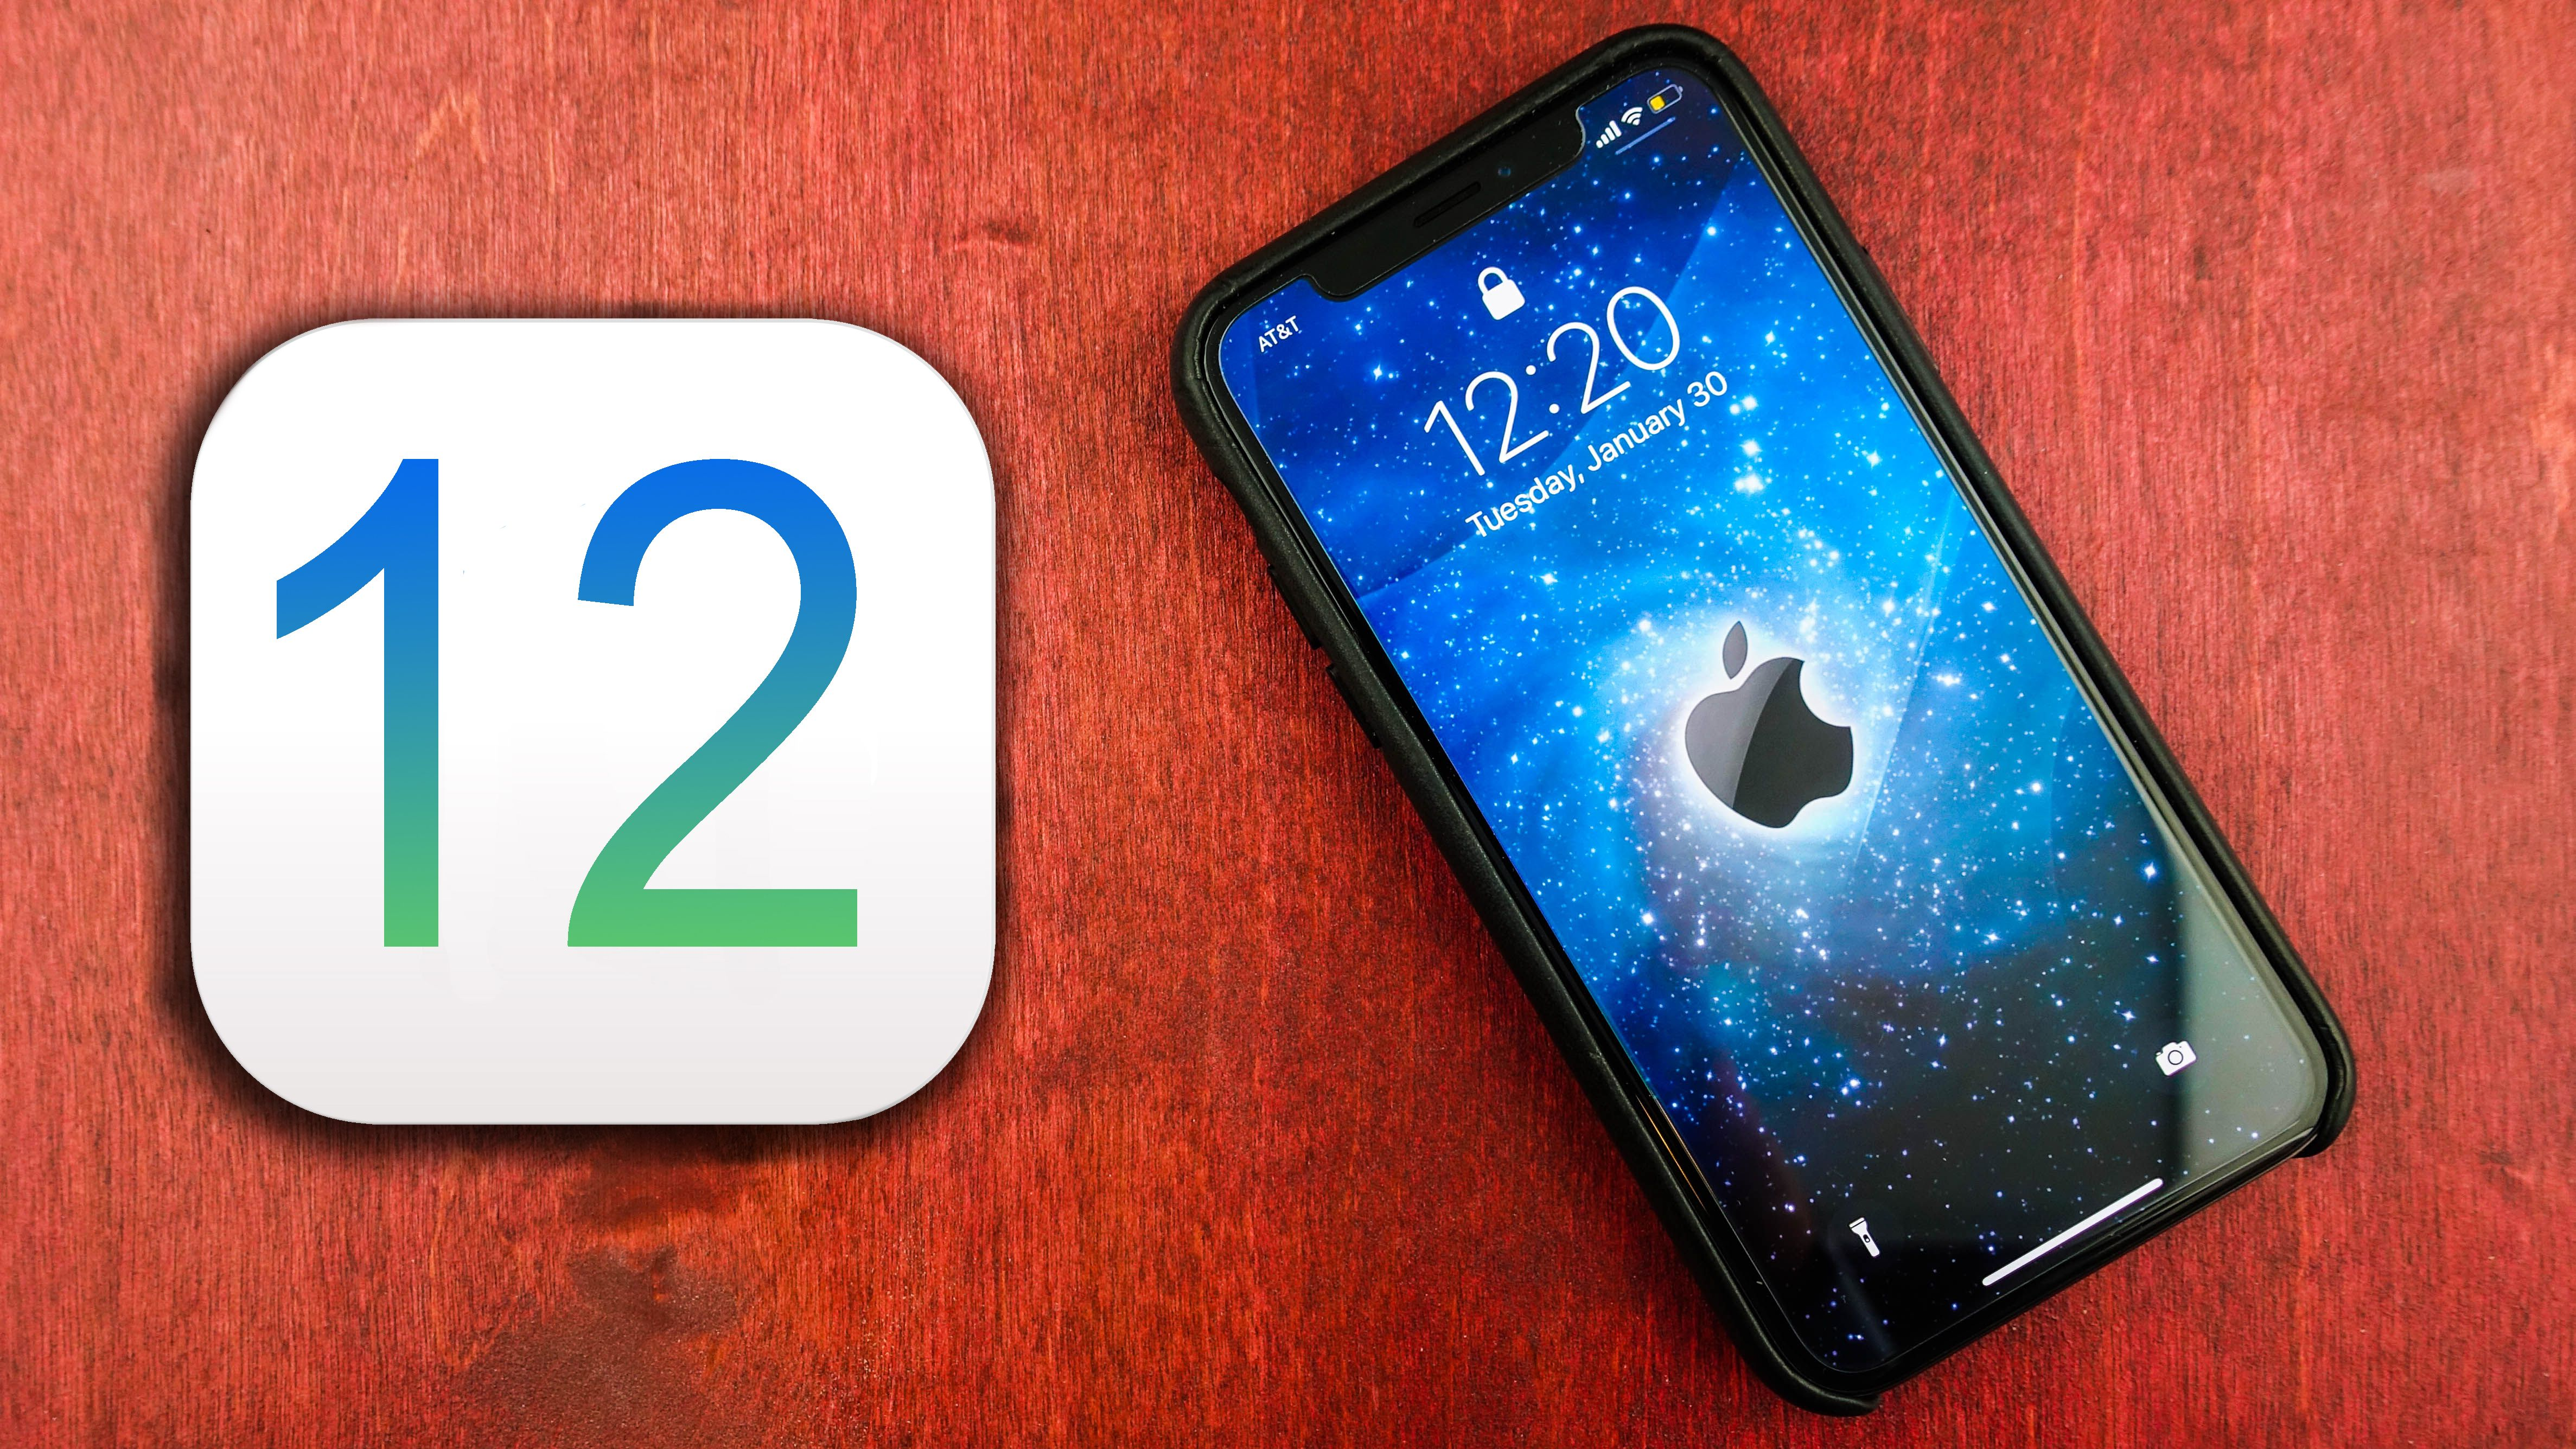 How To Use The Measure App On iOS 12? Iphone, New ios